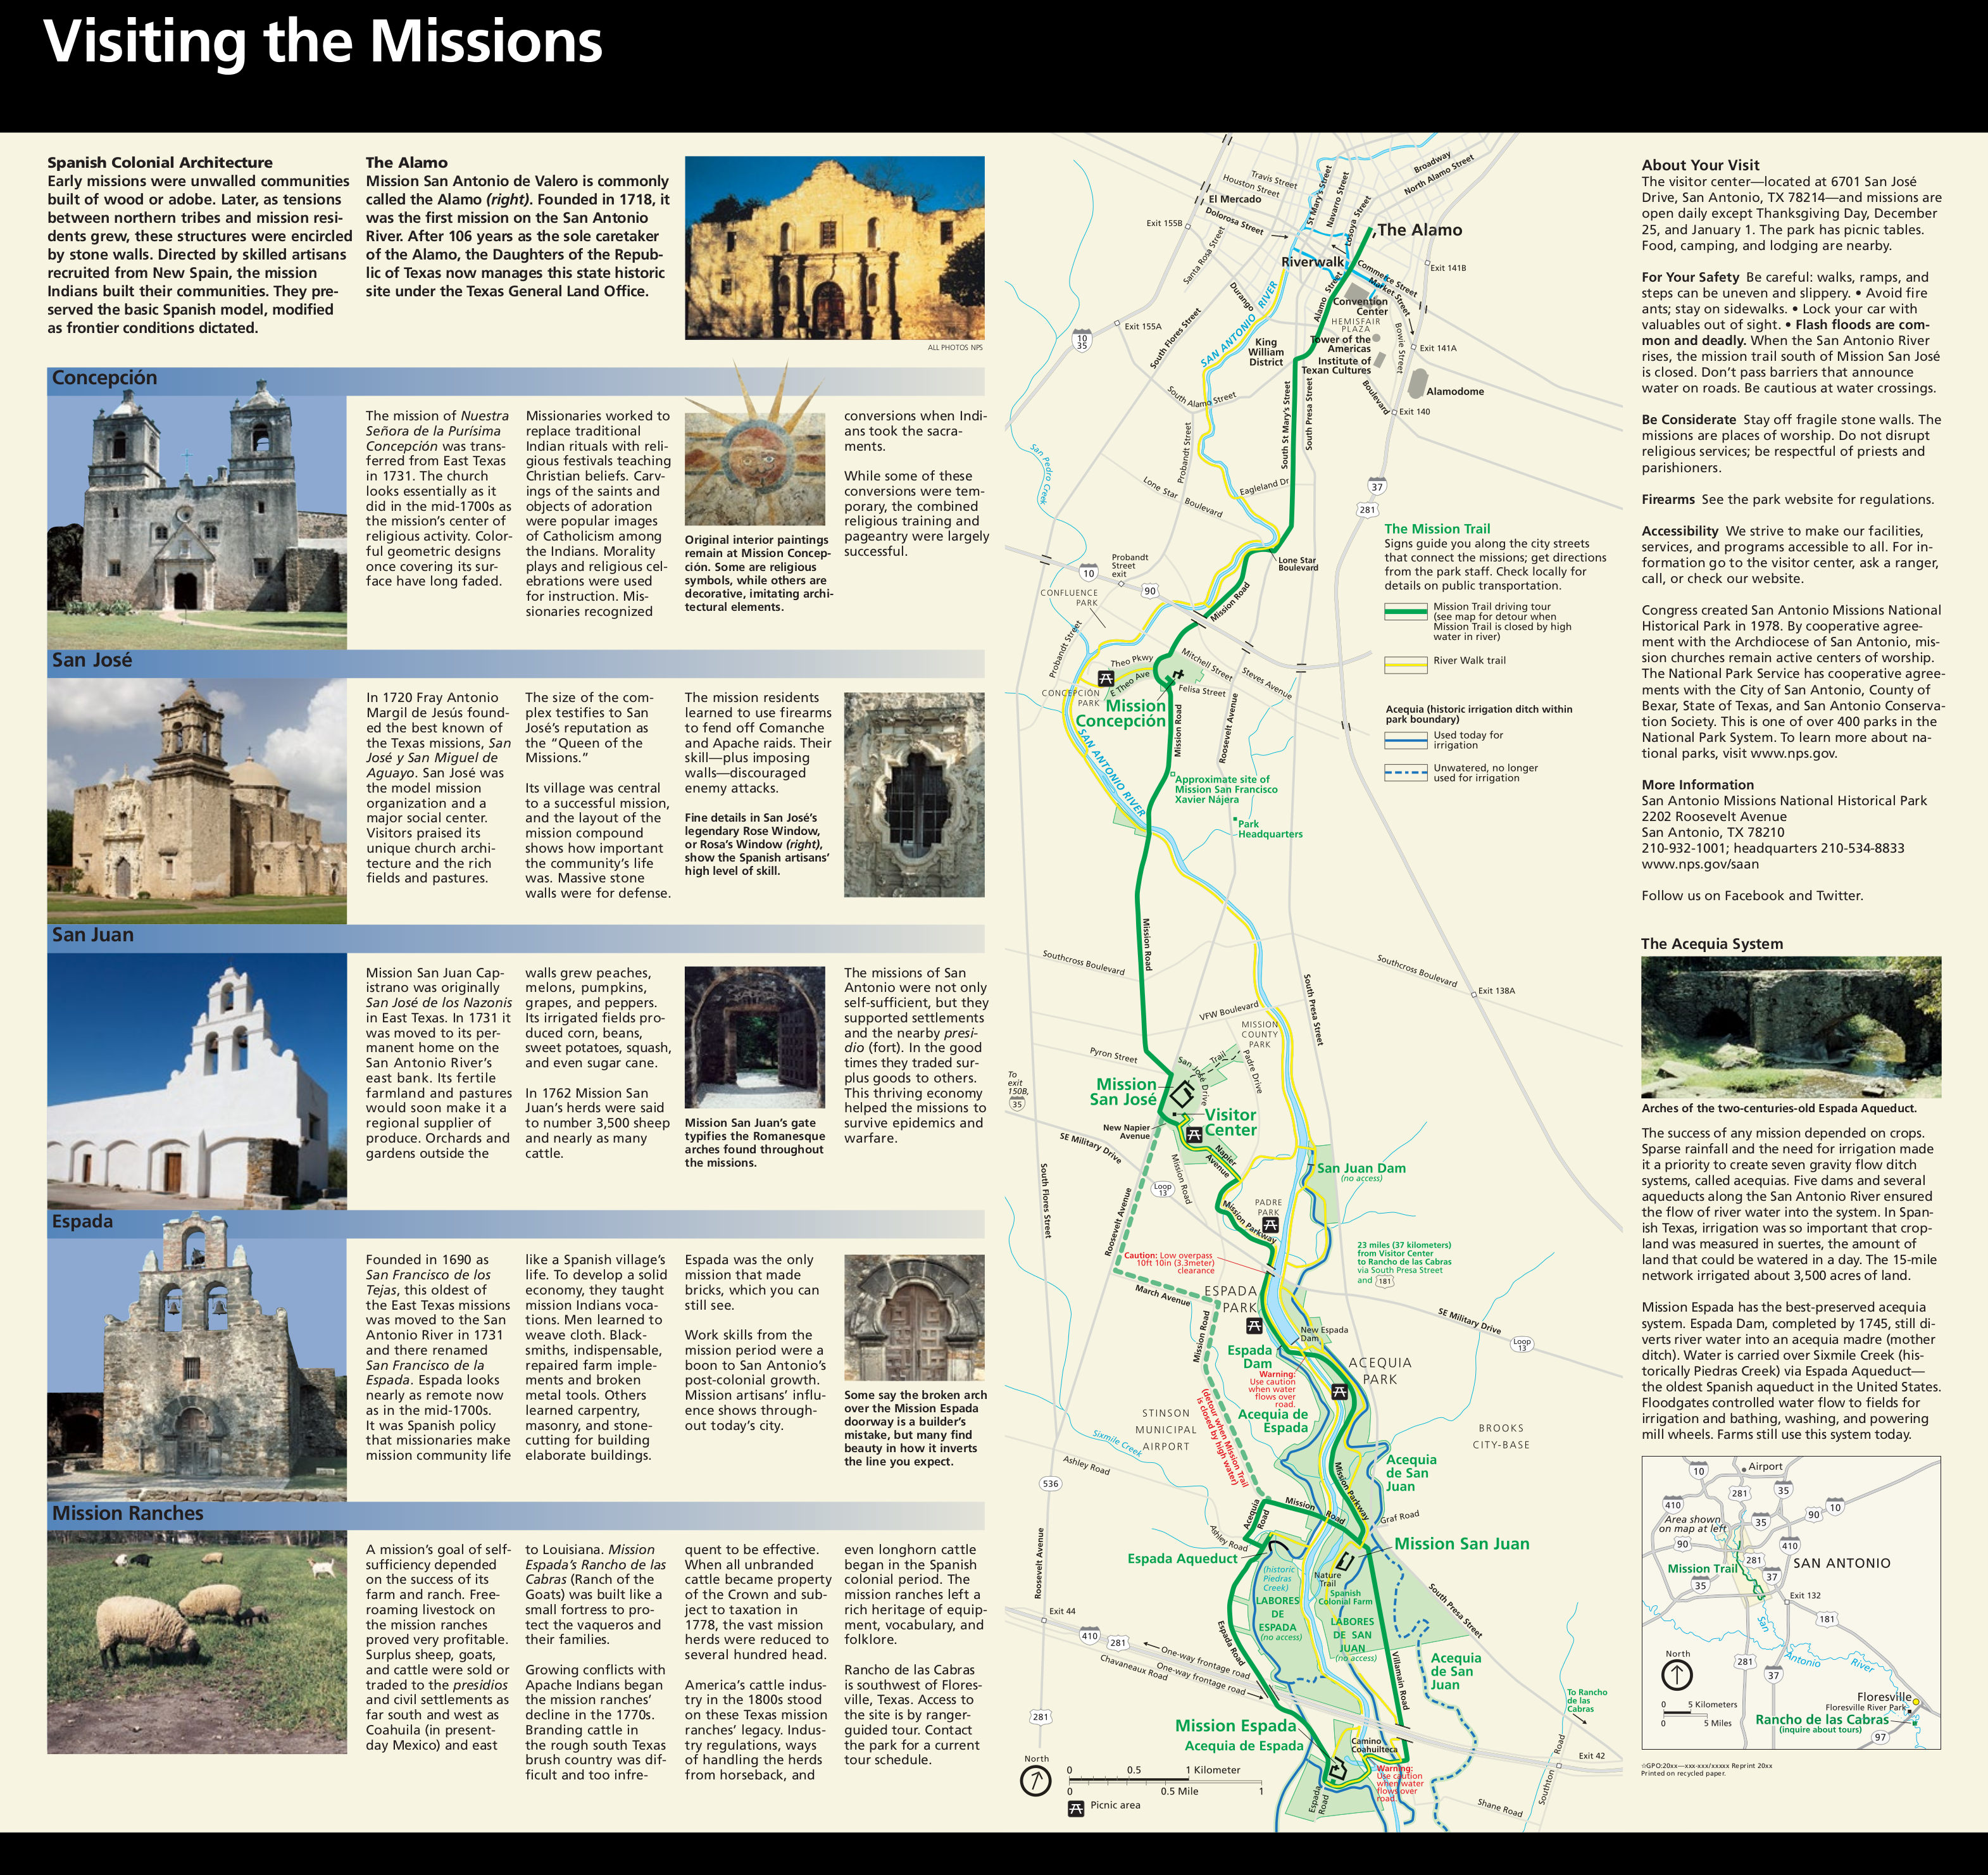 San Antonio Missions Maps | NPMaps.com - just free maps, period. on texas vfw district map, hidalgo county precincts map, west coast conference map, sacramento kings map, santa cruz mission map, peoria sports complex map, la purisima mission layout map, florida missions map, miission tx city map, new mexico missions map, california missions map, mission concepcion map, arizona missions map, spanish settlements map, mission espada map, mission san jose map, texas missions map, antonio bay oregon map, bowie baysox map, mission reach map,